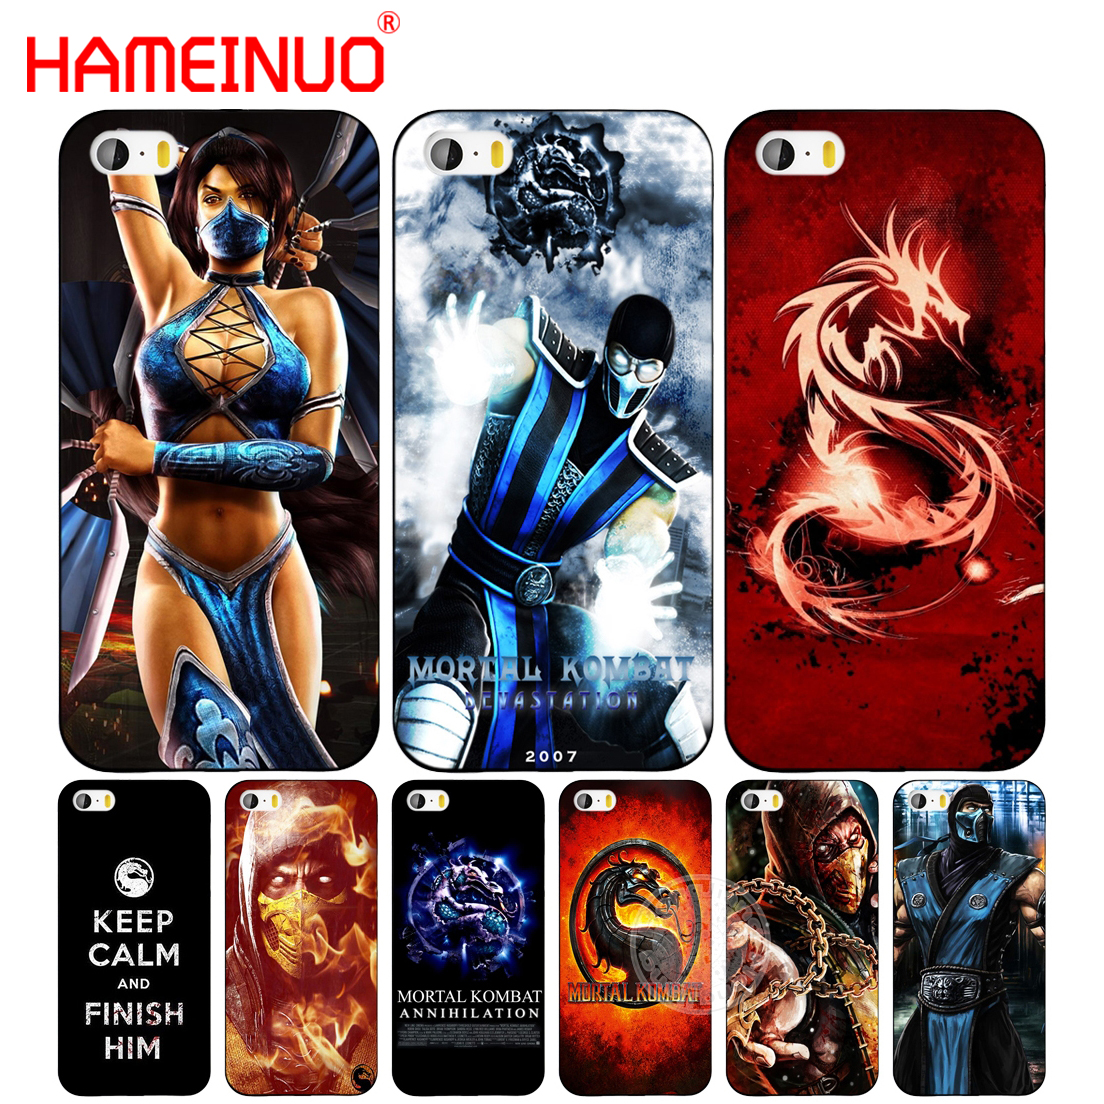 HAMEINUO Scorpion Sub Zero Mortal Kombat x cell phone case Cover per iphone 6 4 4 s 5 5 s SE 5c 6 6 s 7 8 più la cassa per iphone 7 X